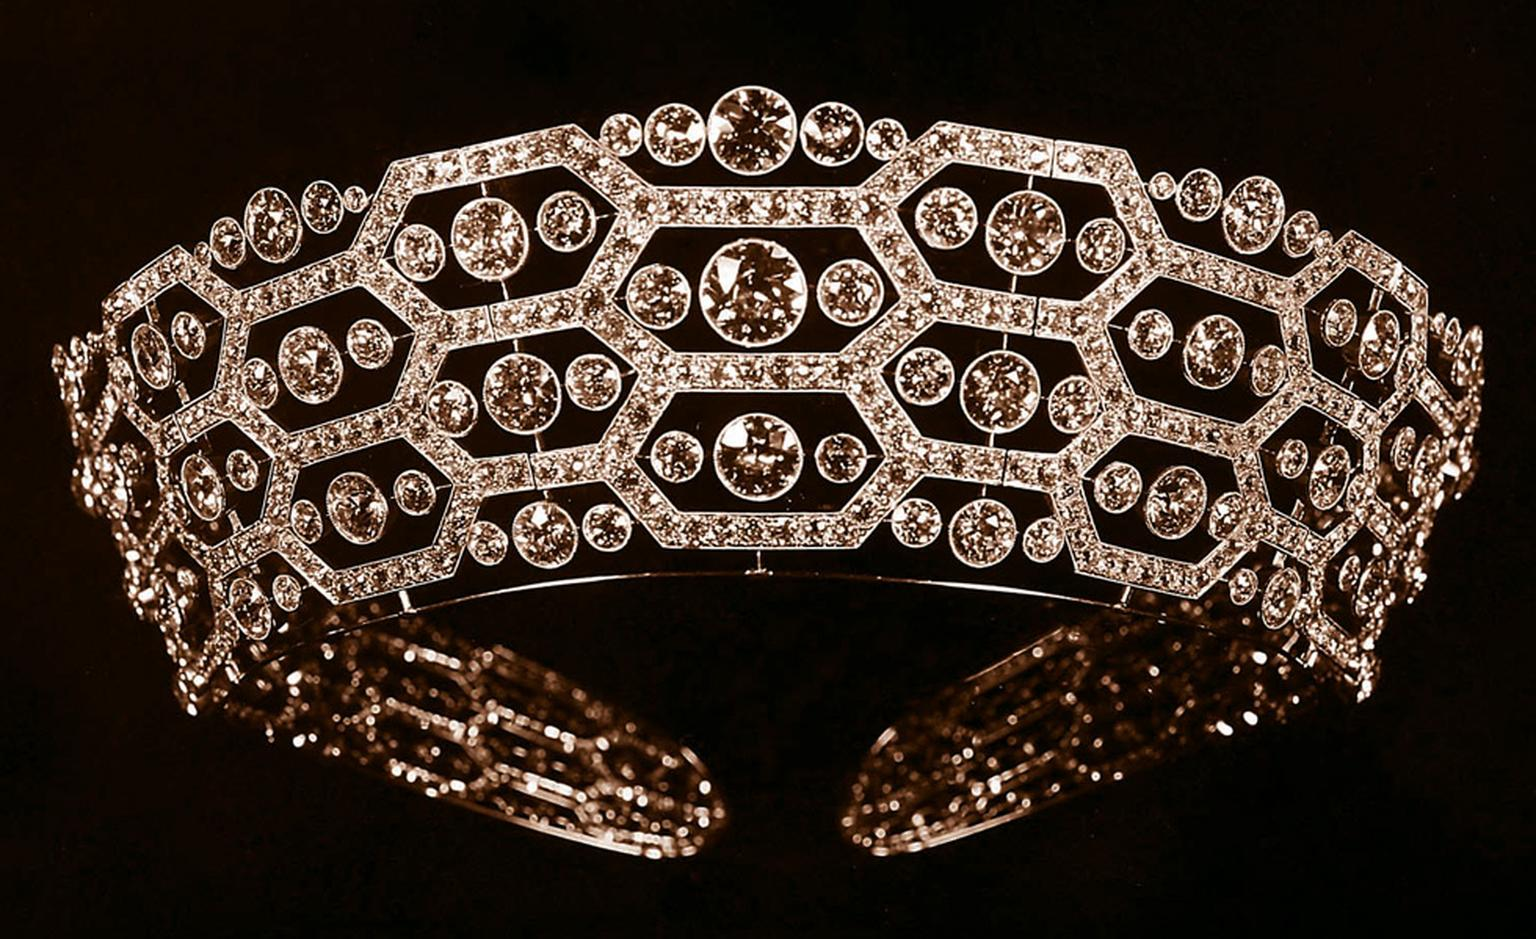 Boucheron second version of the Lady Greville Tiara redesigned in 1921 and later inherited to the Queen Mother in 1942. It was since modified and worn by Camilla, Duchess of Cornwall in 2006.